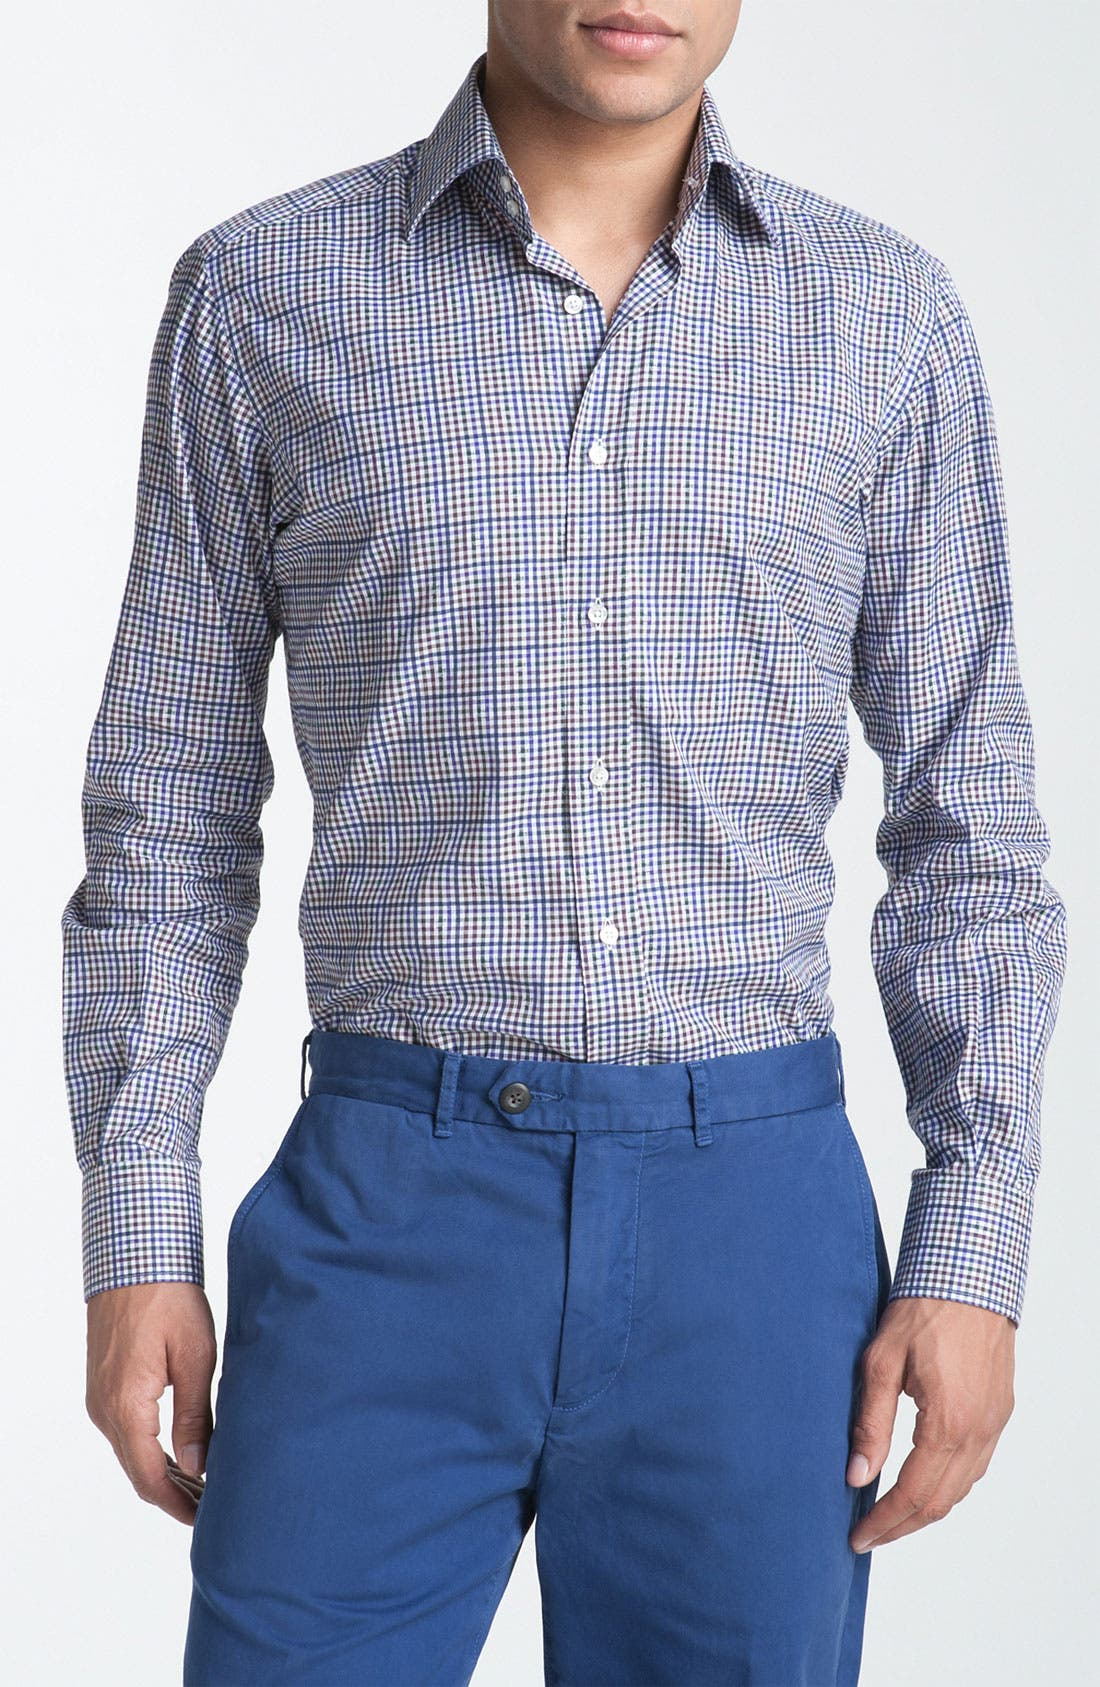 Main Image - Etro Plaid Woven Dress Shirt